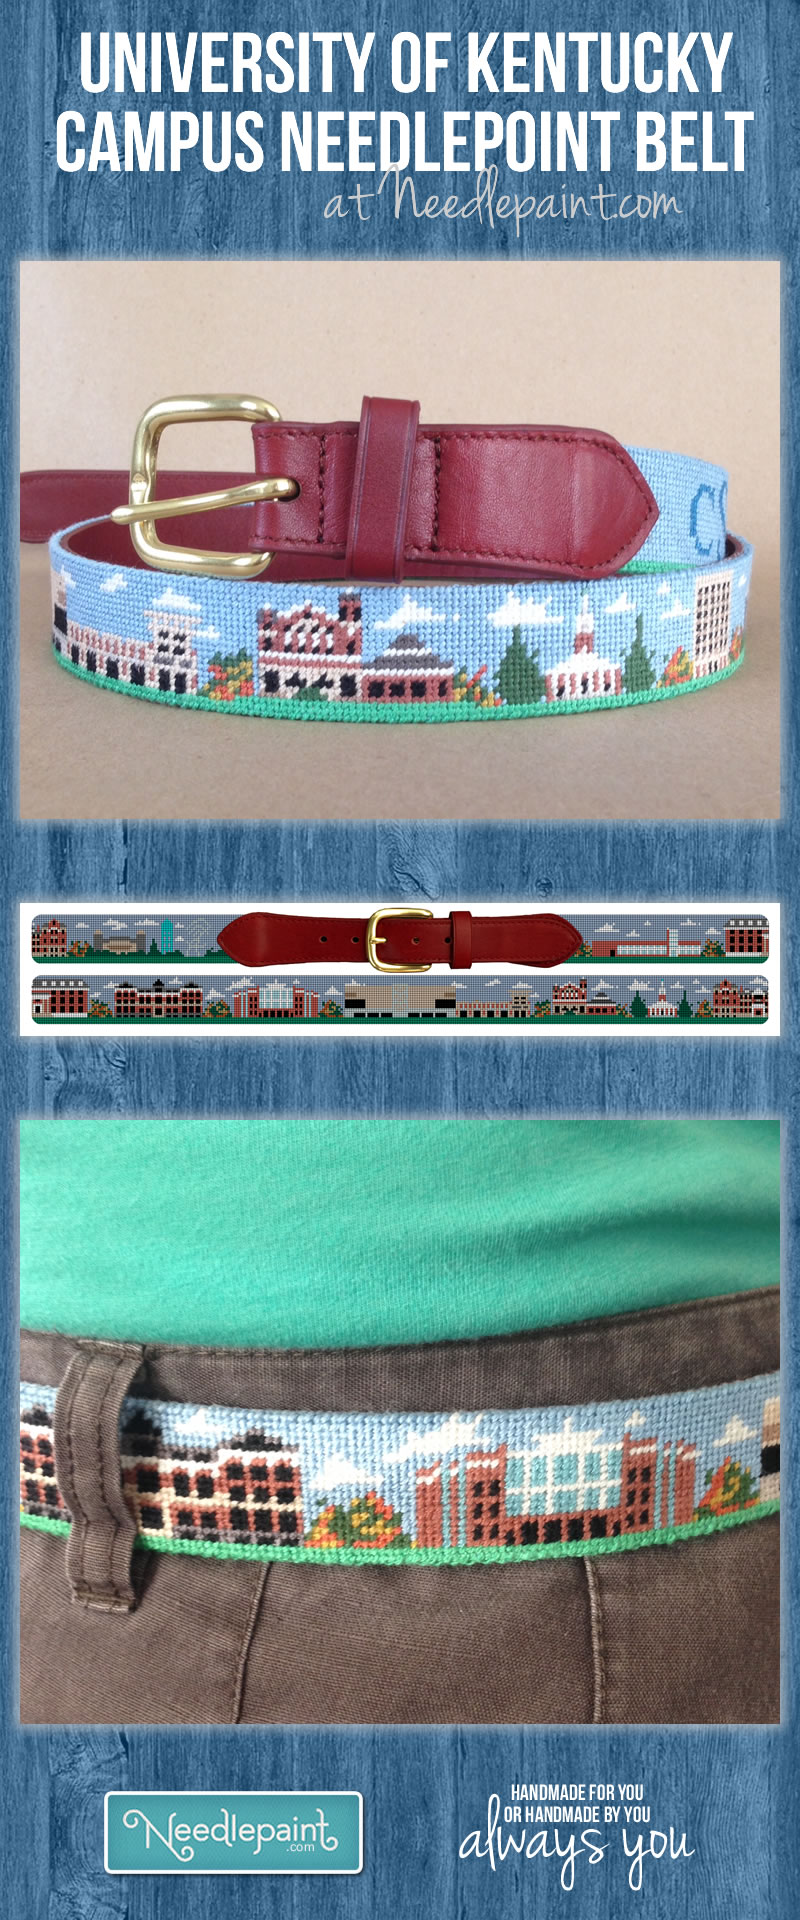 University of Kentucky Needlepoint Belt